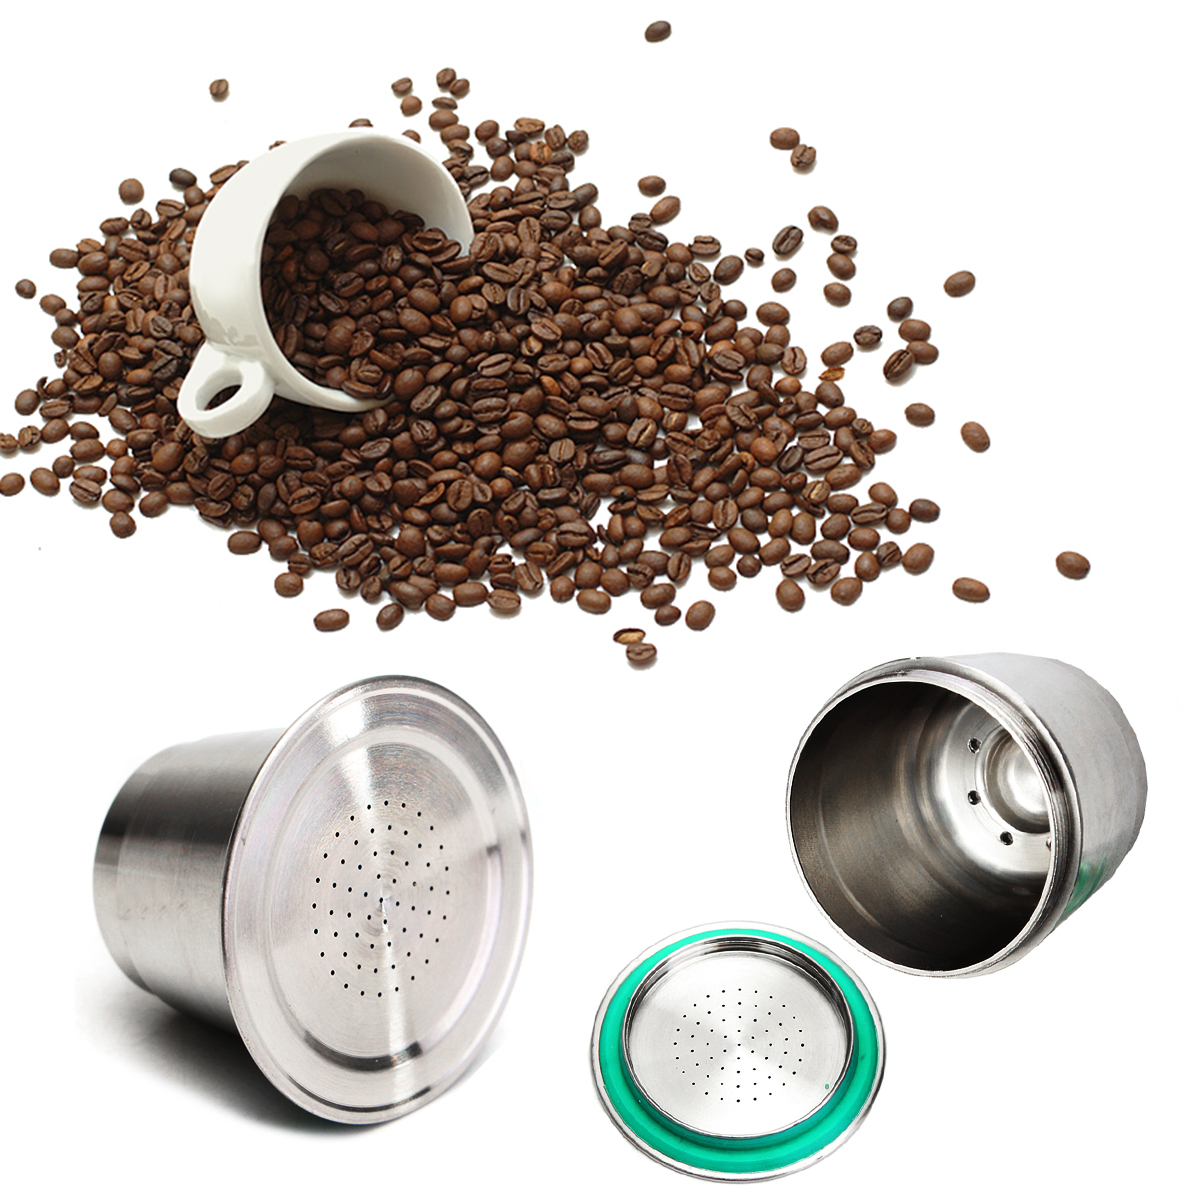 5g Stainless Steel Espresso Capsule Reusable Coffee Metal Cup Compatible with Nespresso Machine by